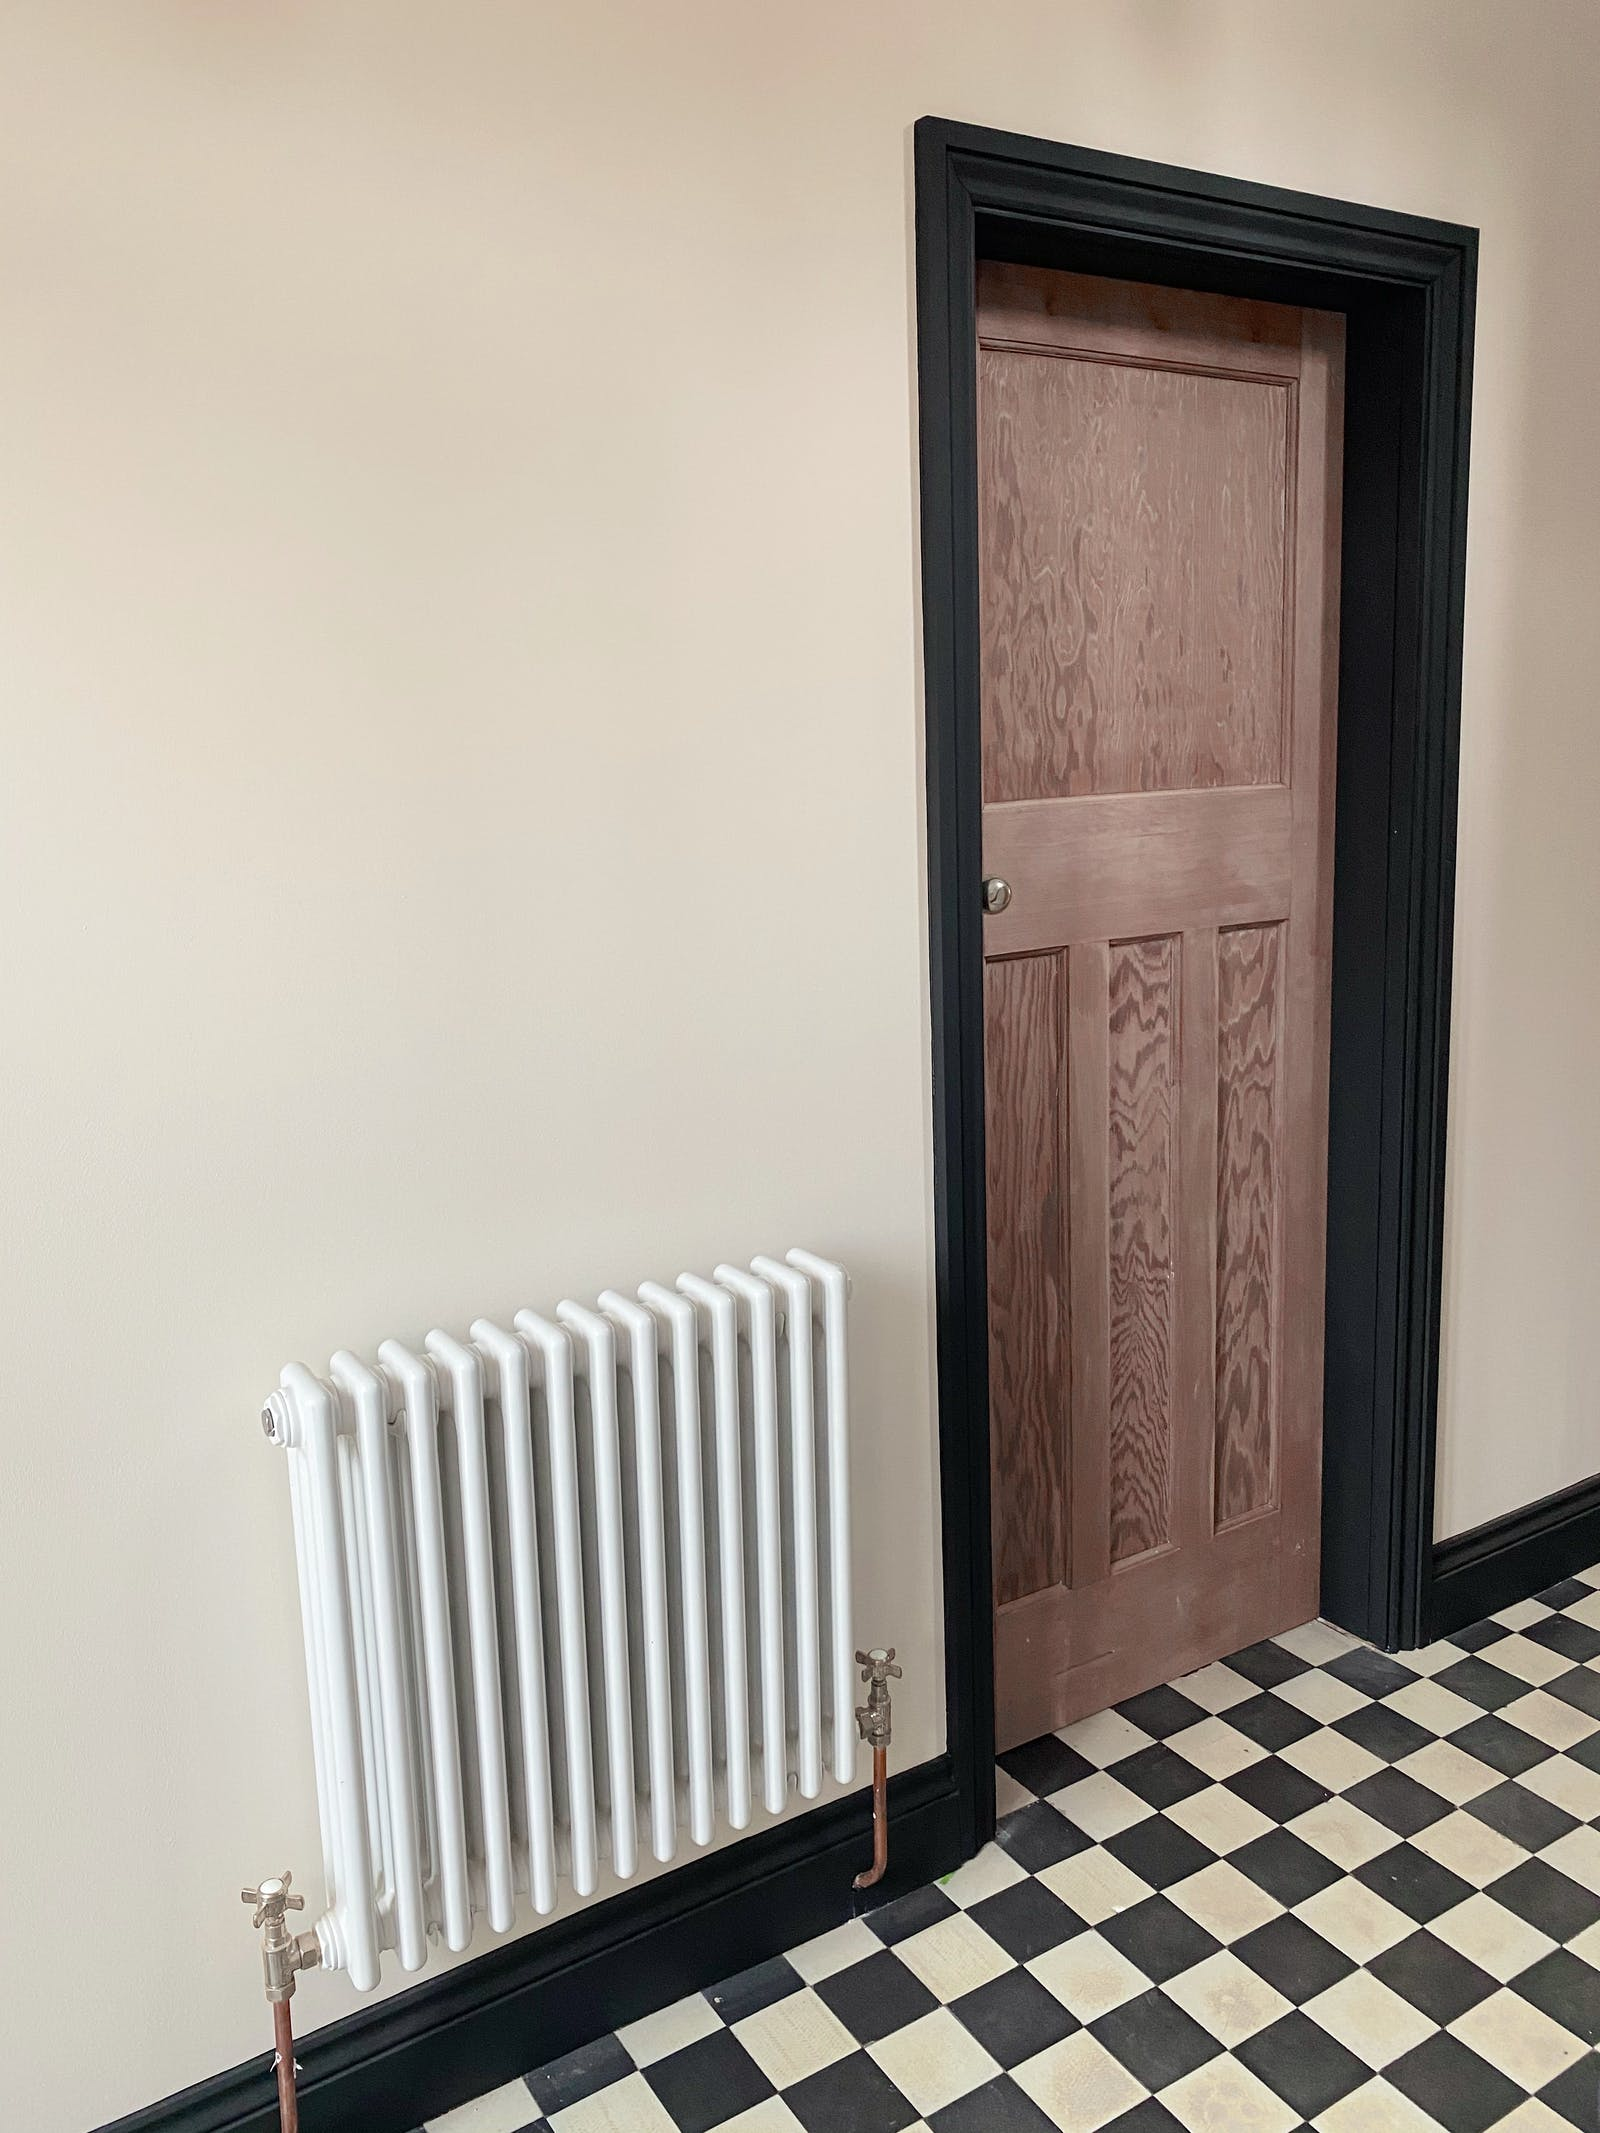 Image of door frame painted in Lick Black 02 with checker-board flooring